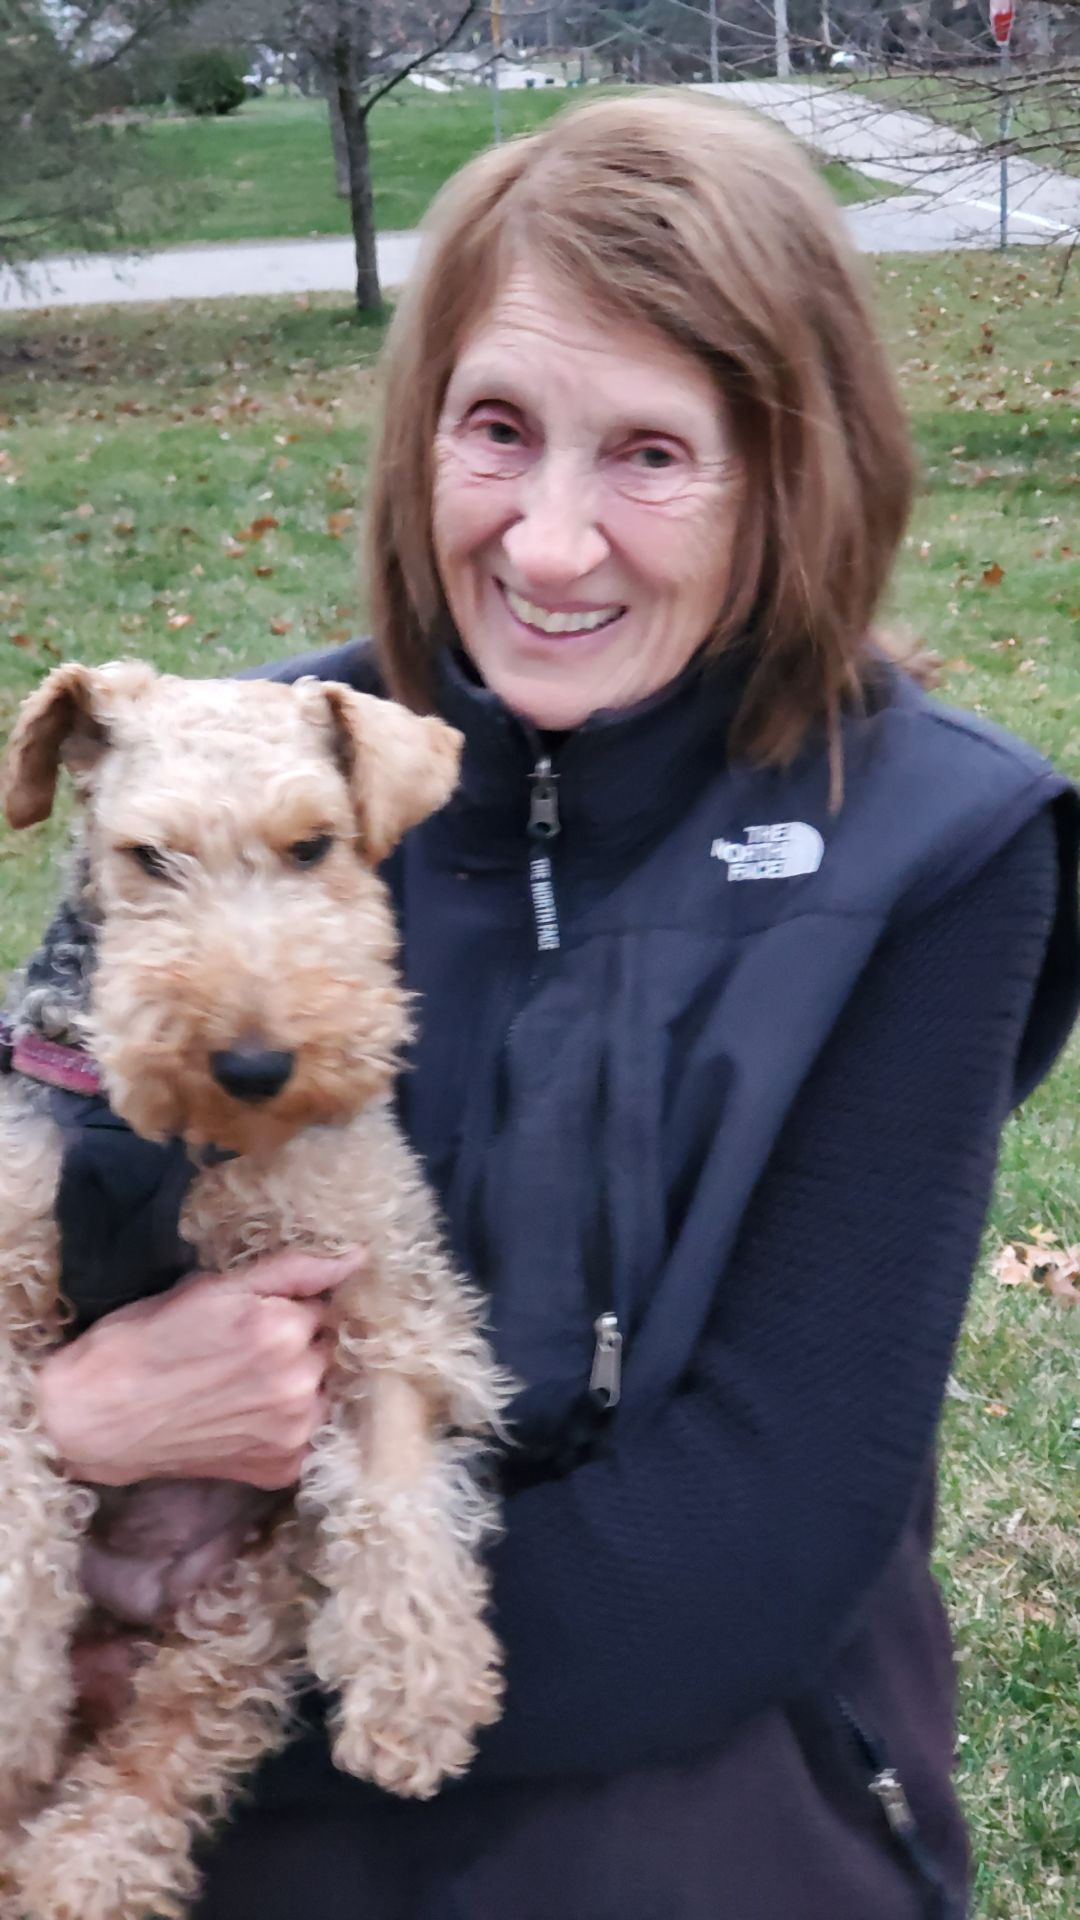 Dog rescue Snack and owner Janet